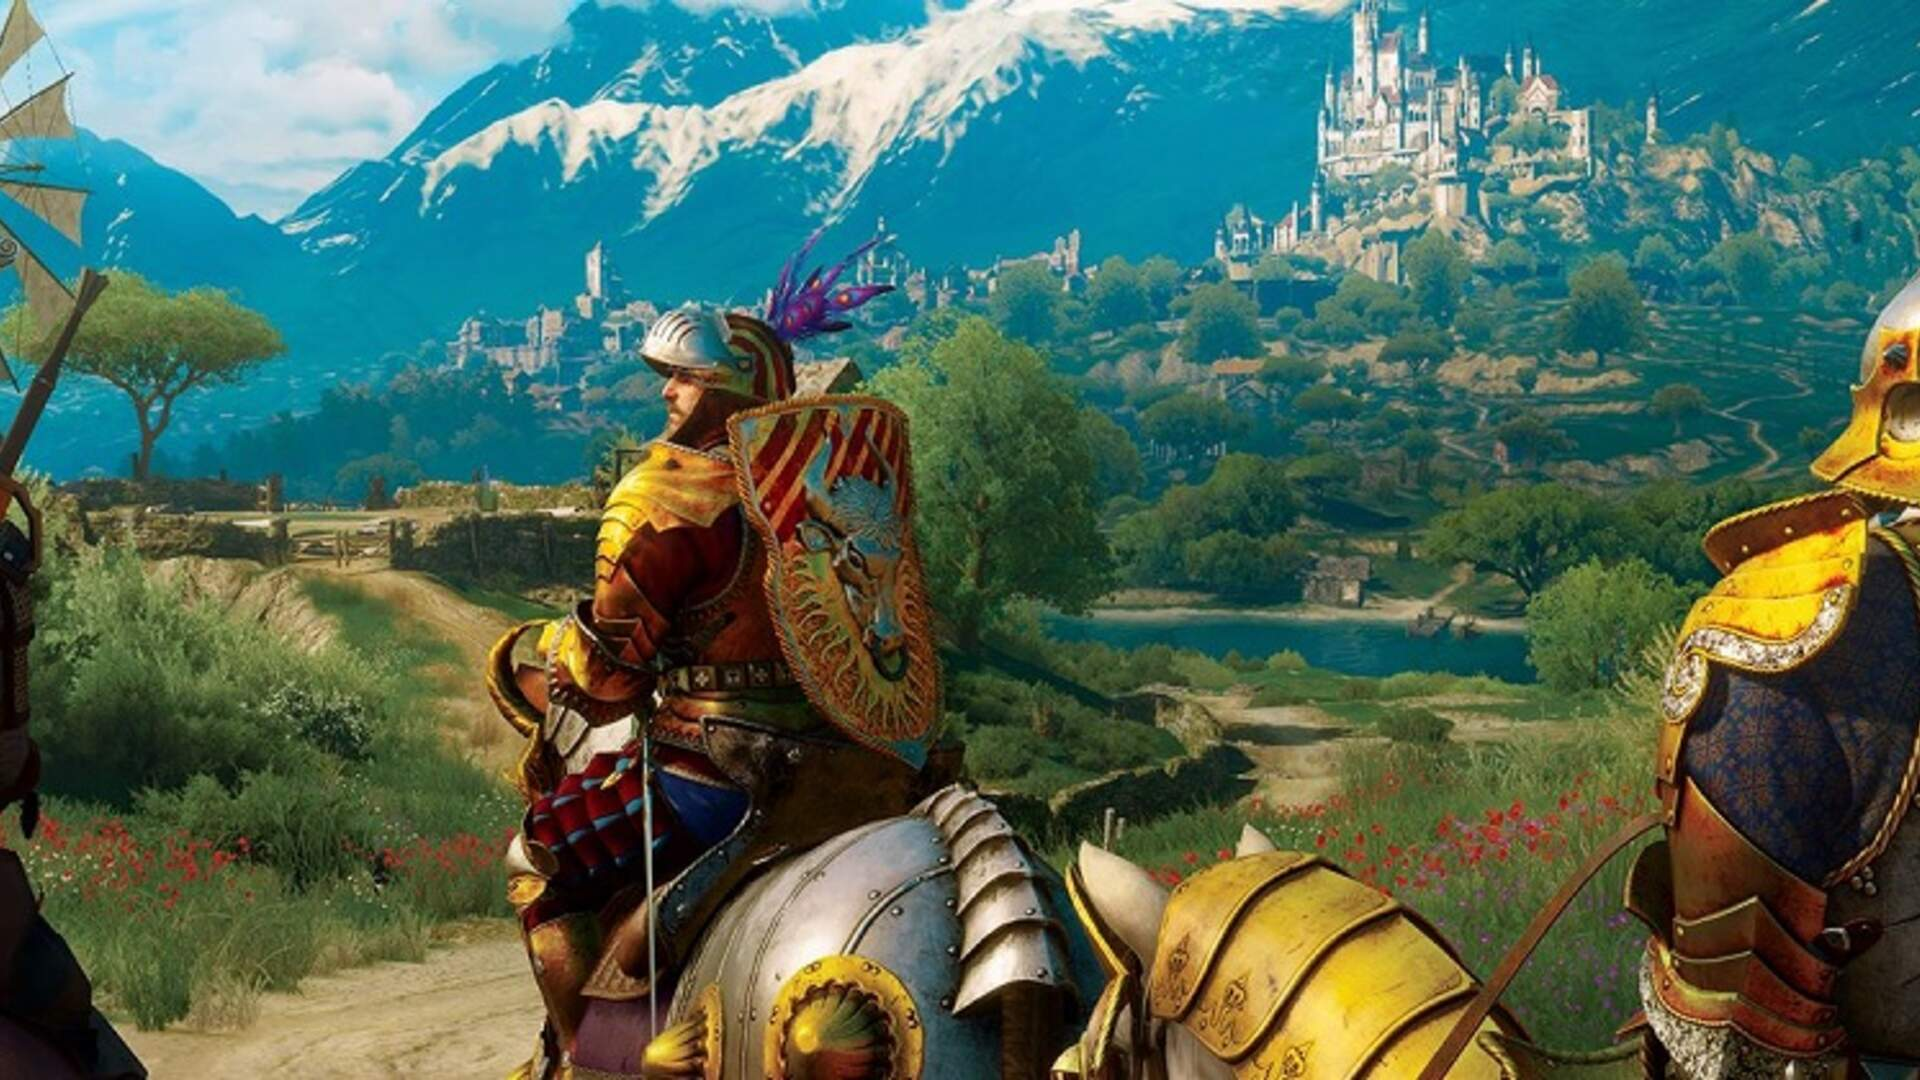 The Witcher 3: Blood and Wine - Developer Photo Easter Egg